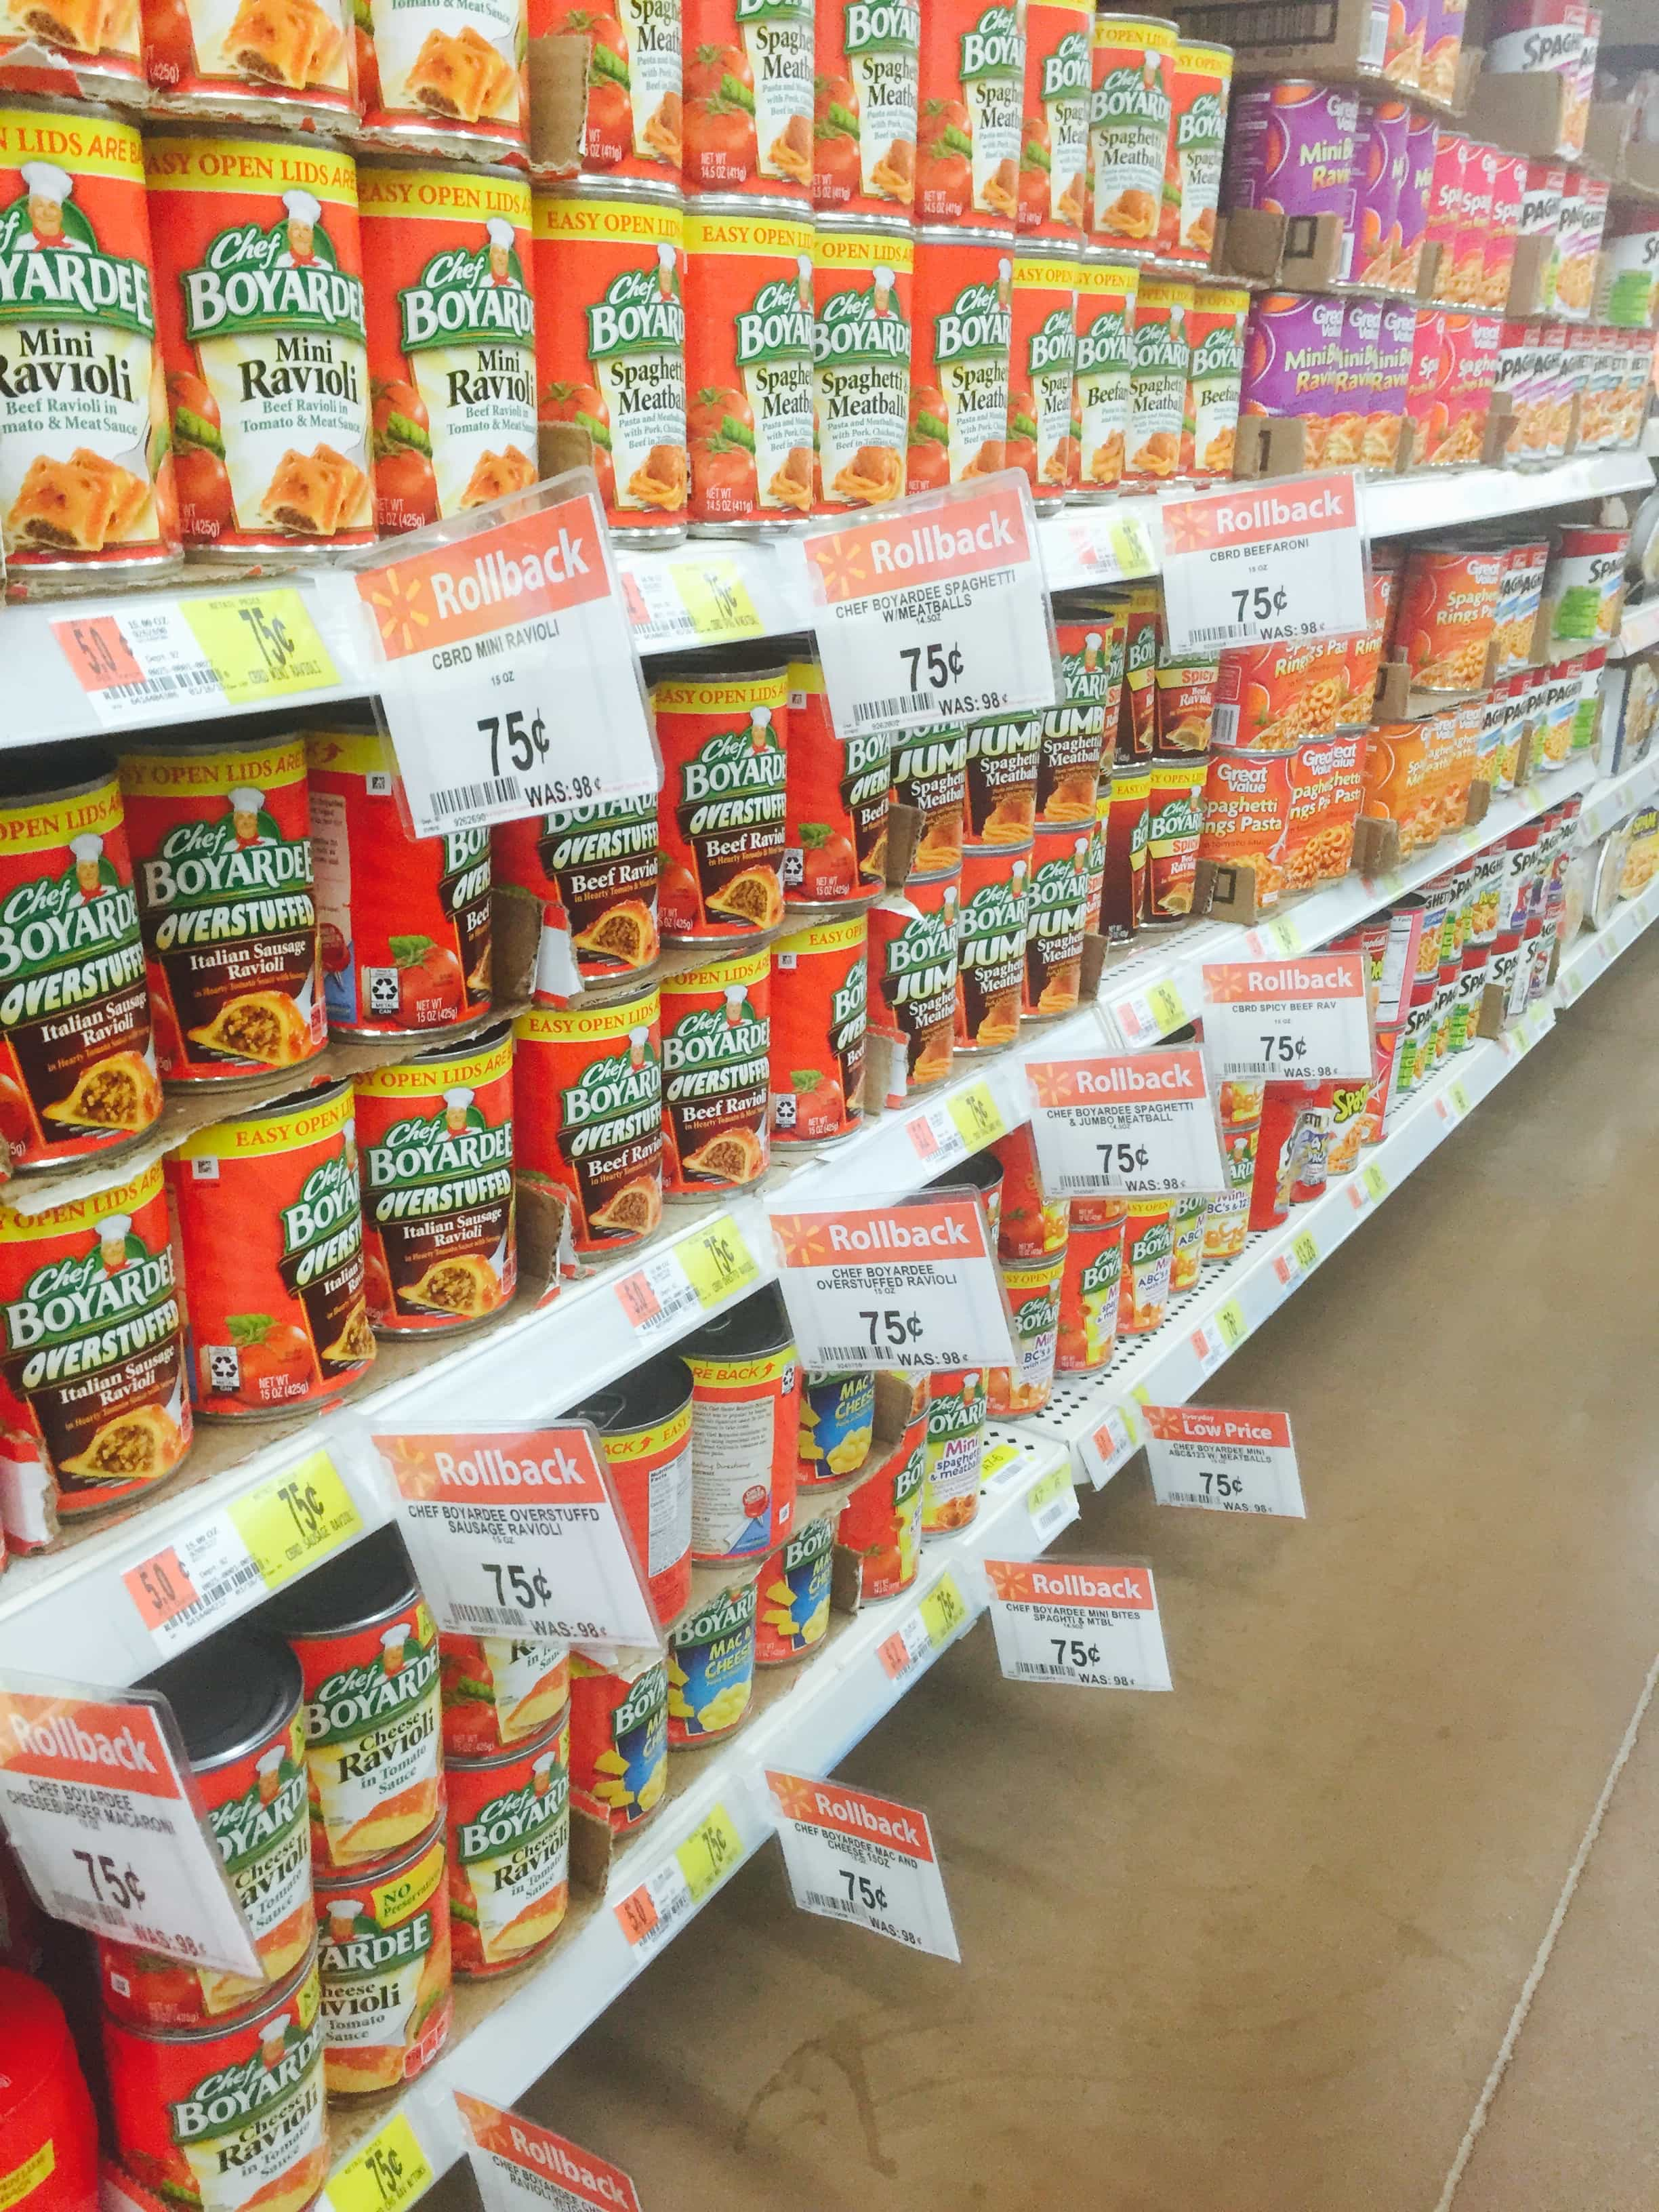 Chef Boyardee is on rollback at Walmart for only $0.75!